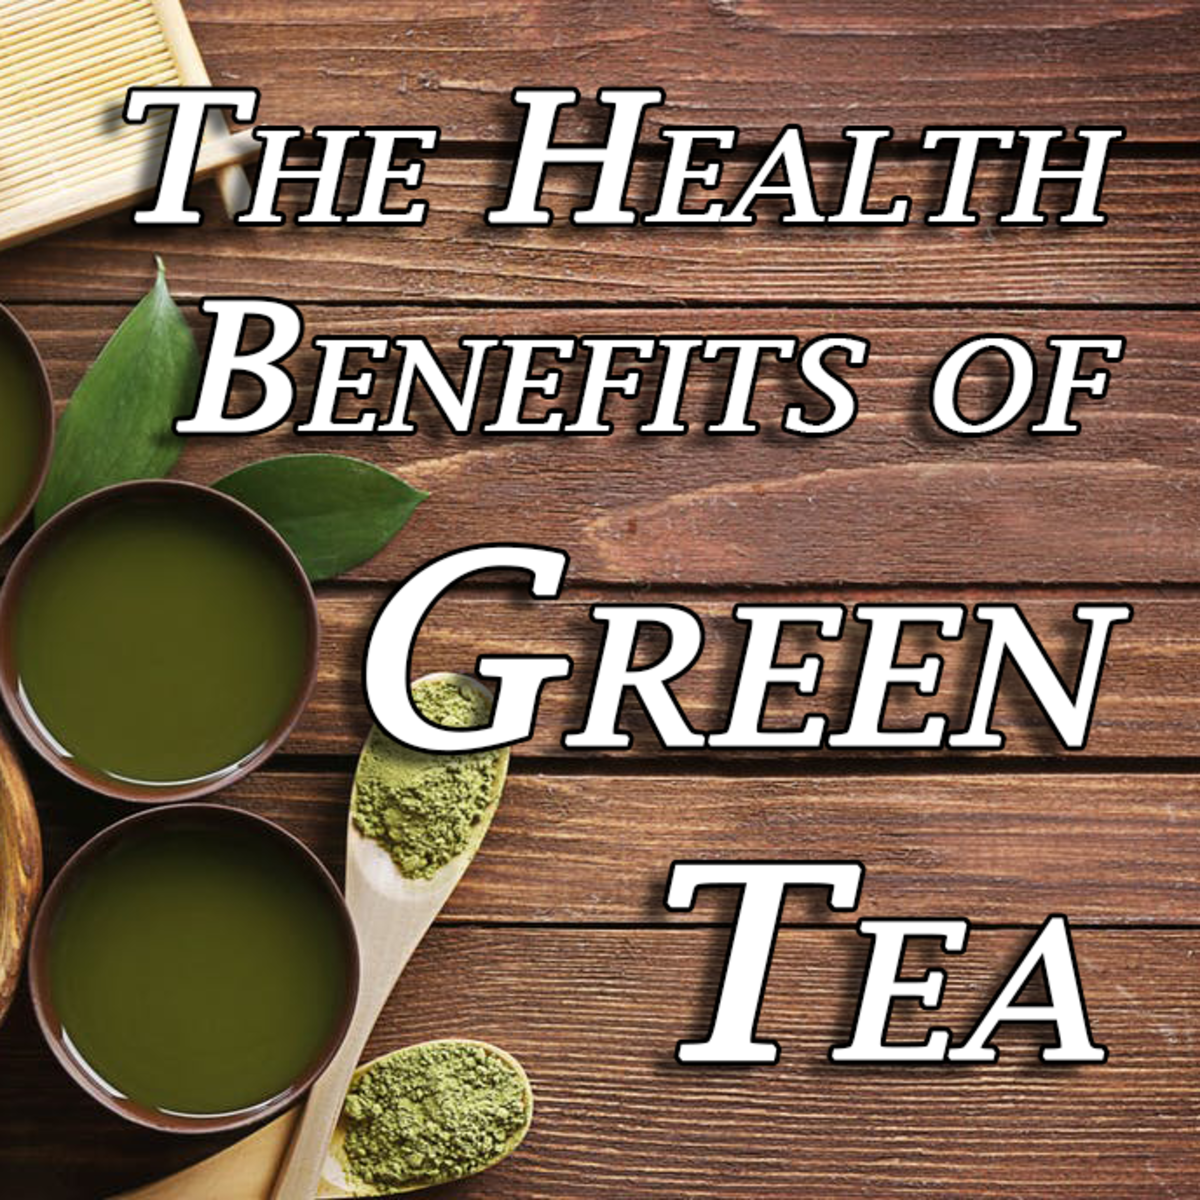 There are many health benefits to drinking green tea!